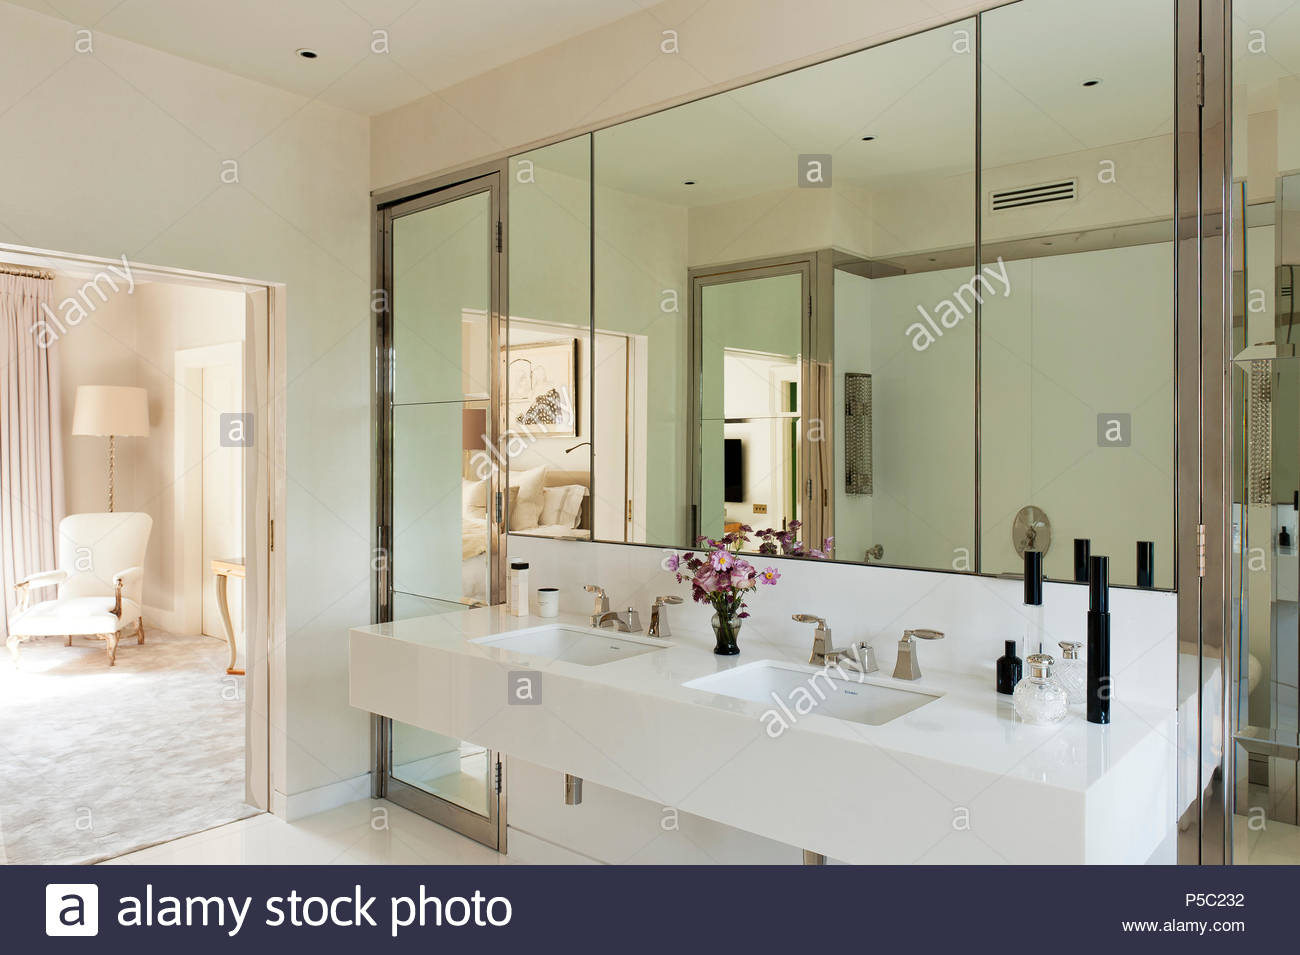 White sink in mirrored bathroom - Stock Image